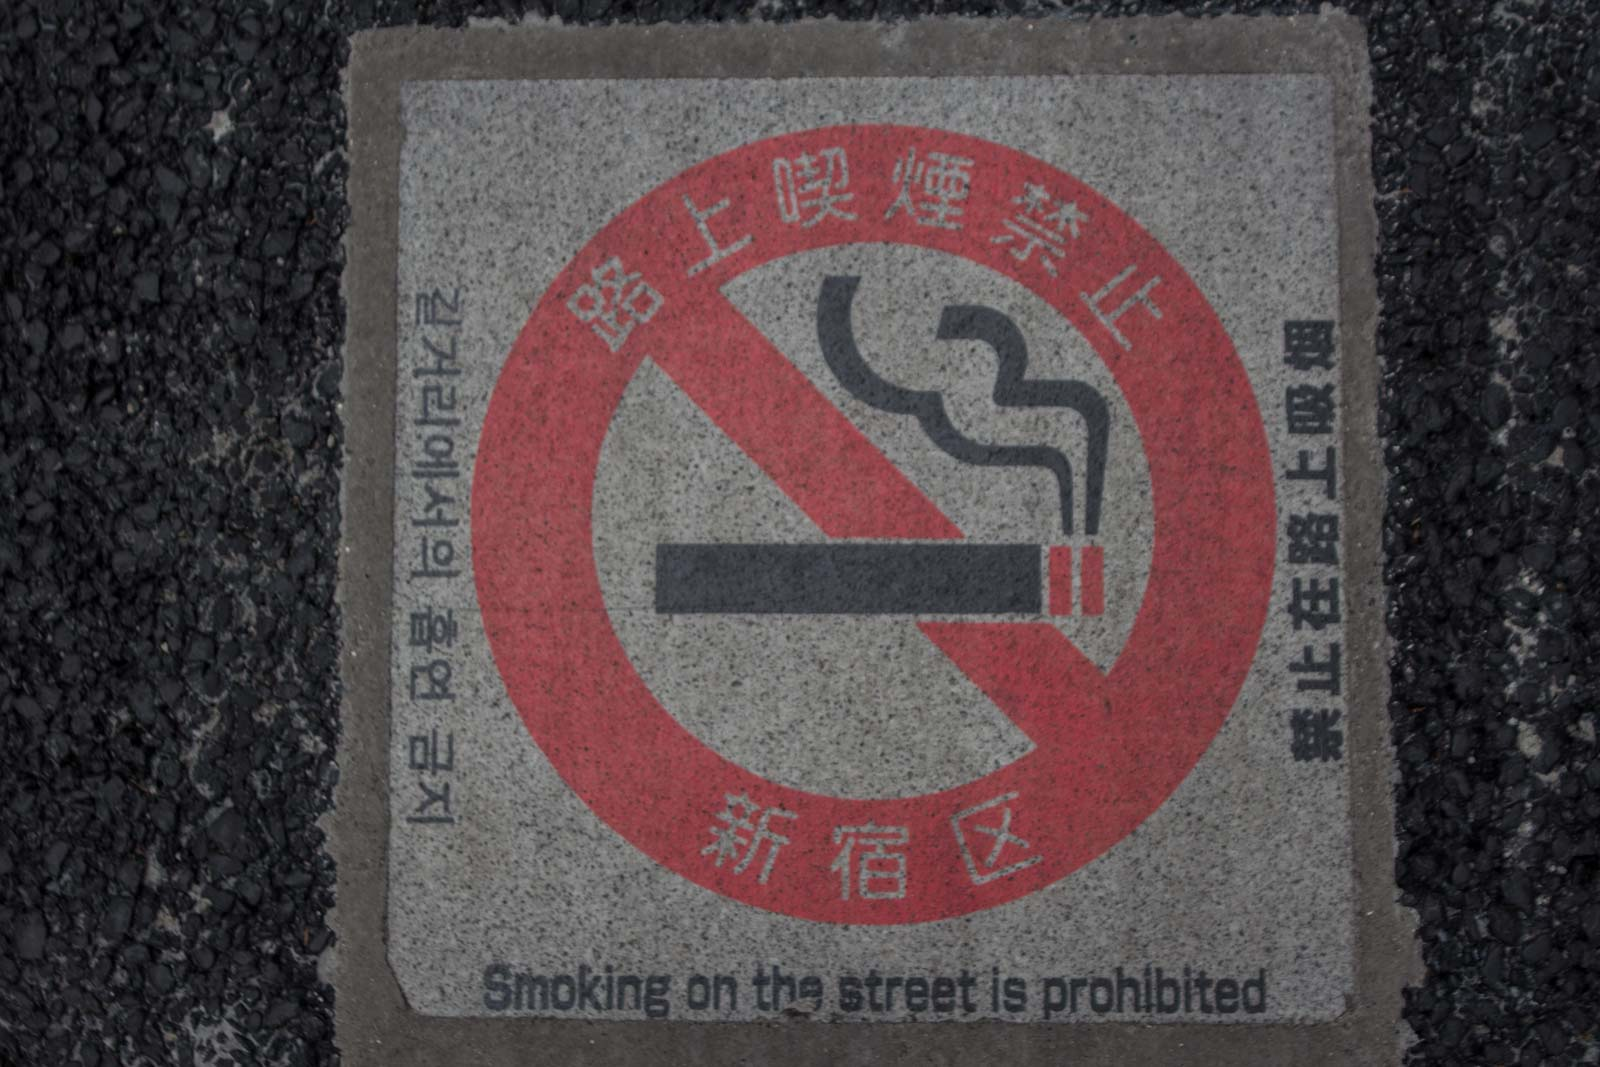 Rules and laws in Tokyo, Japan